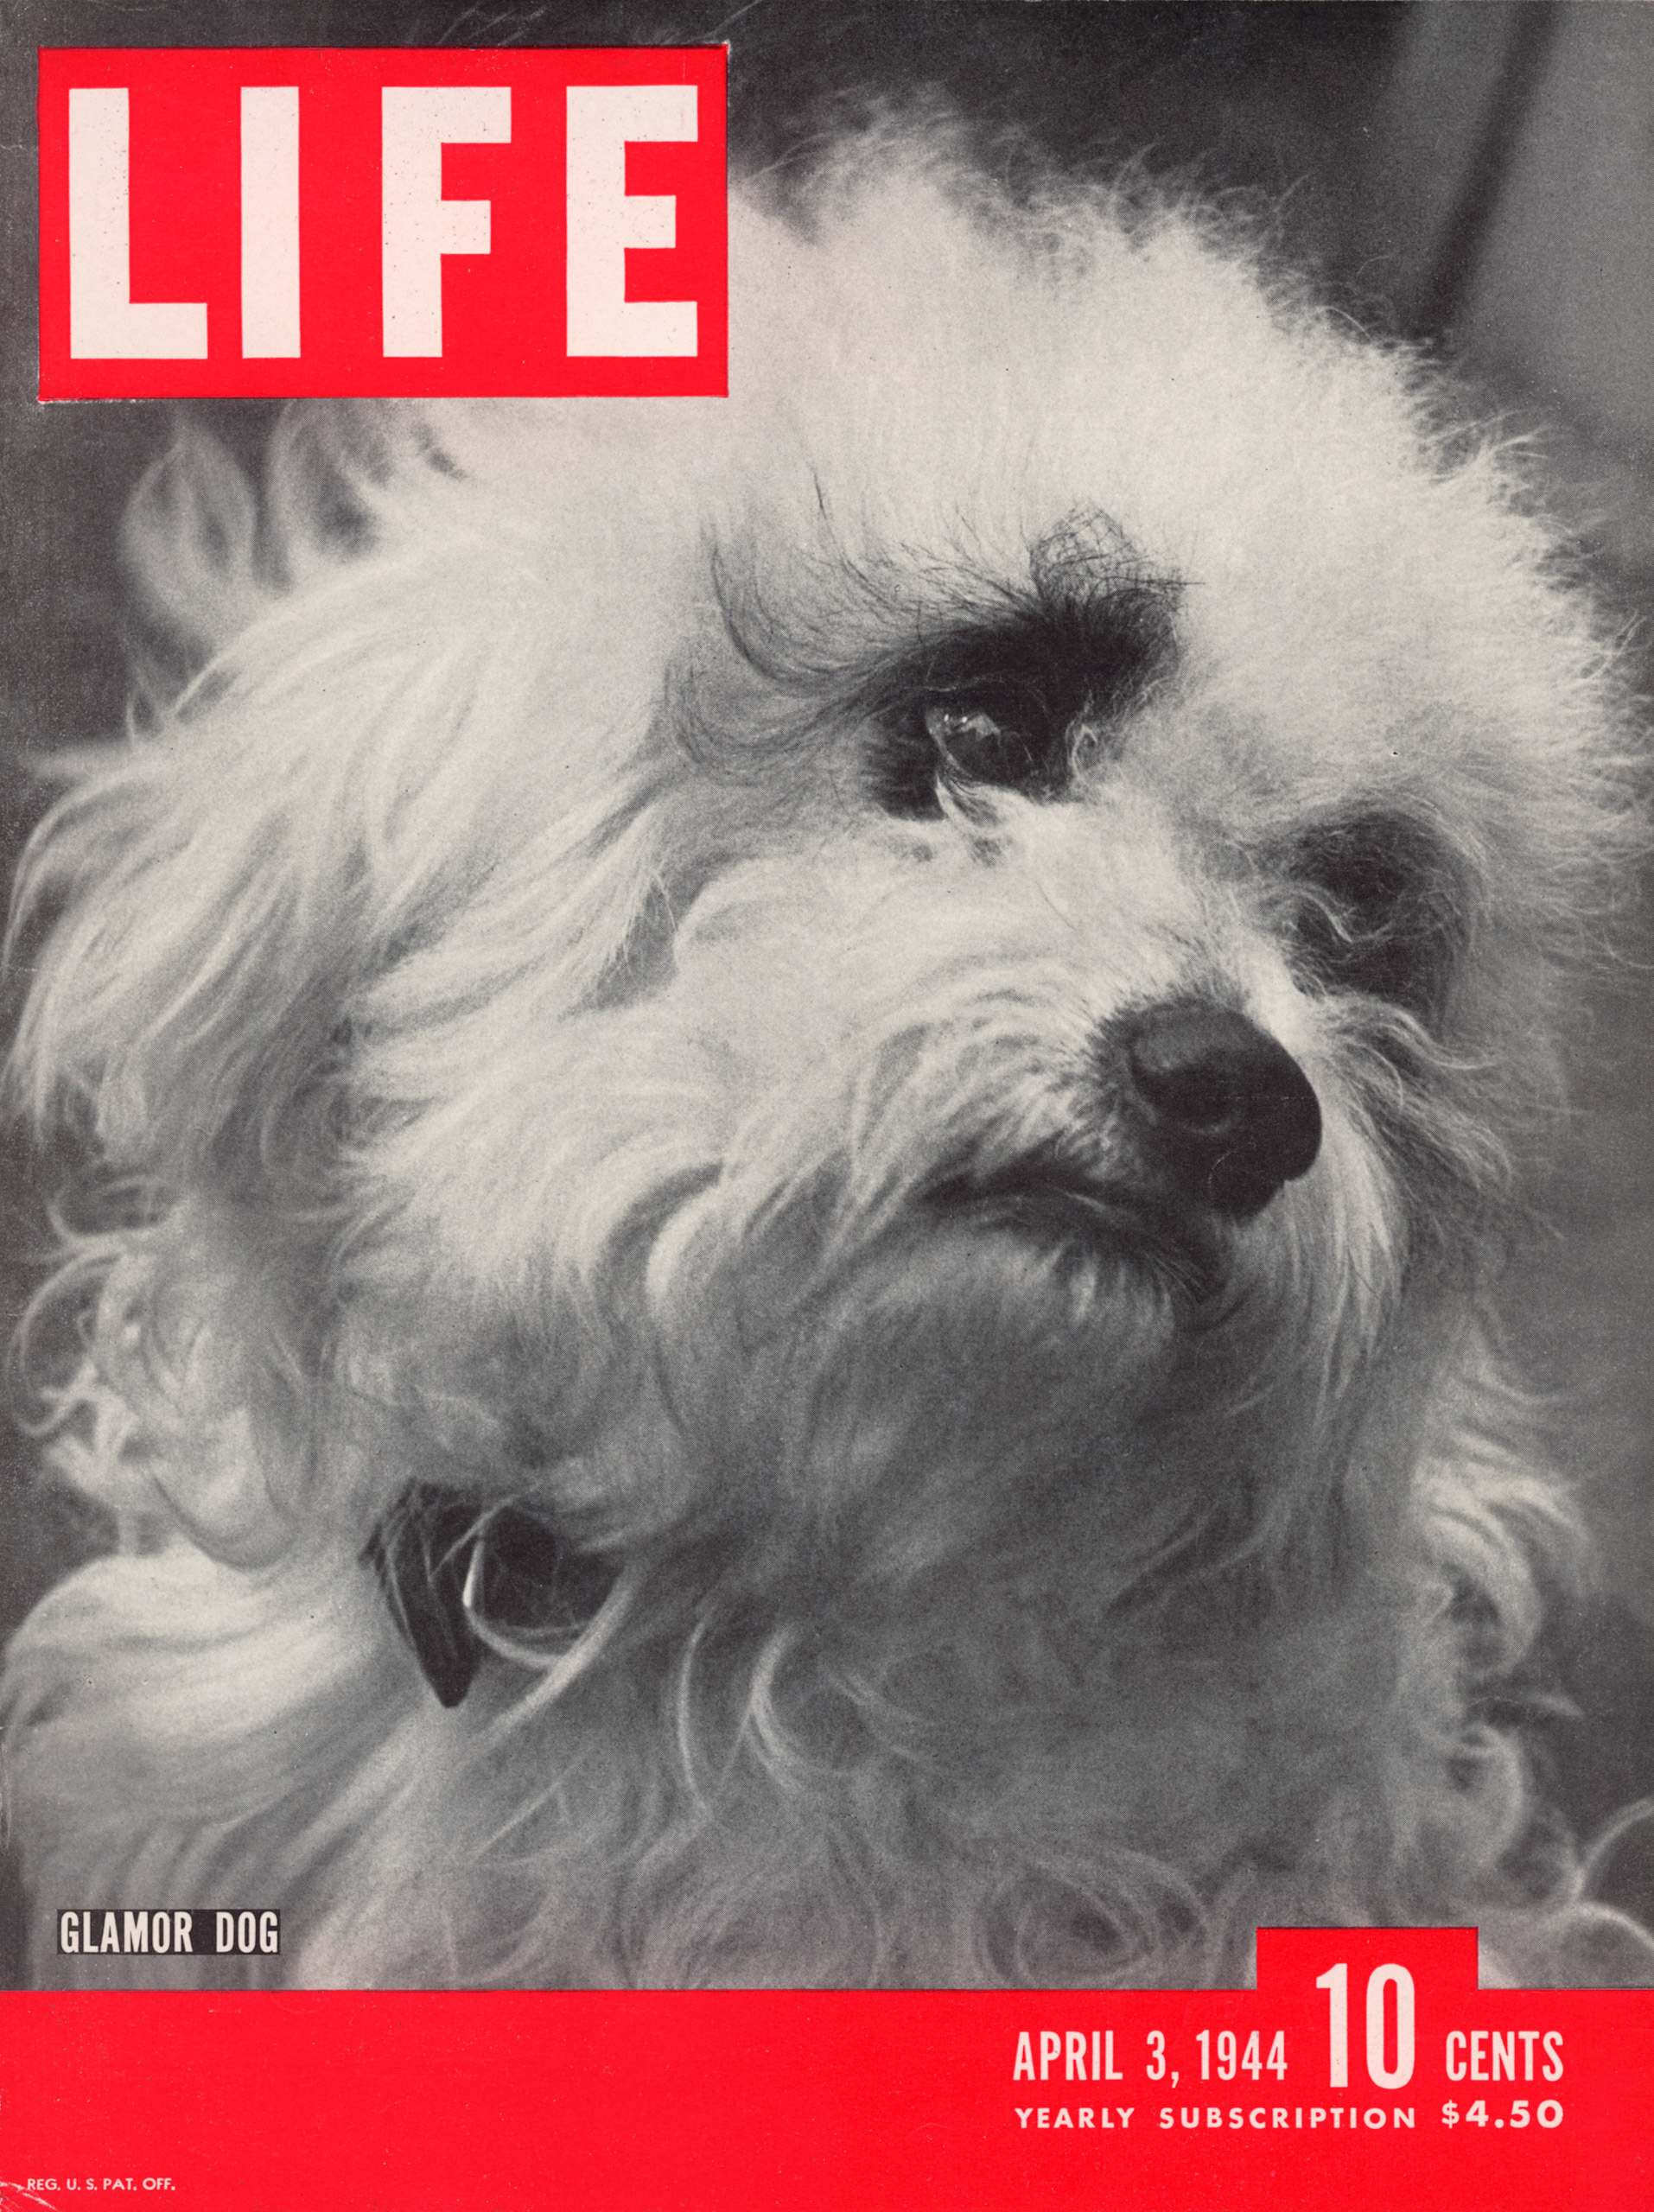 April 3, 1944 LIFE Magazine cover (photo by Nina Leen).